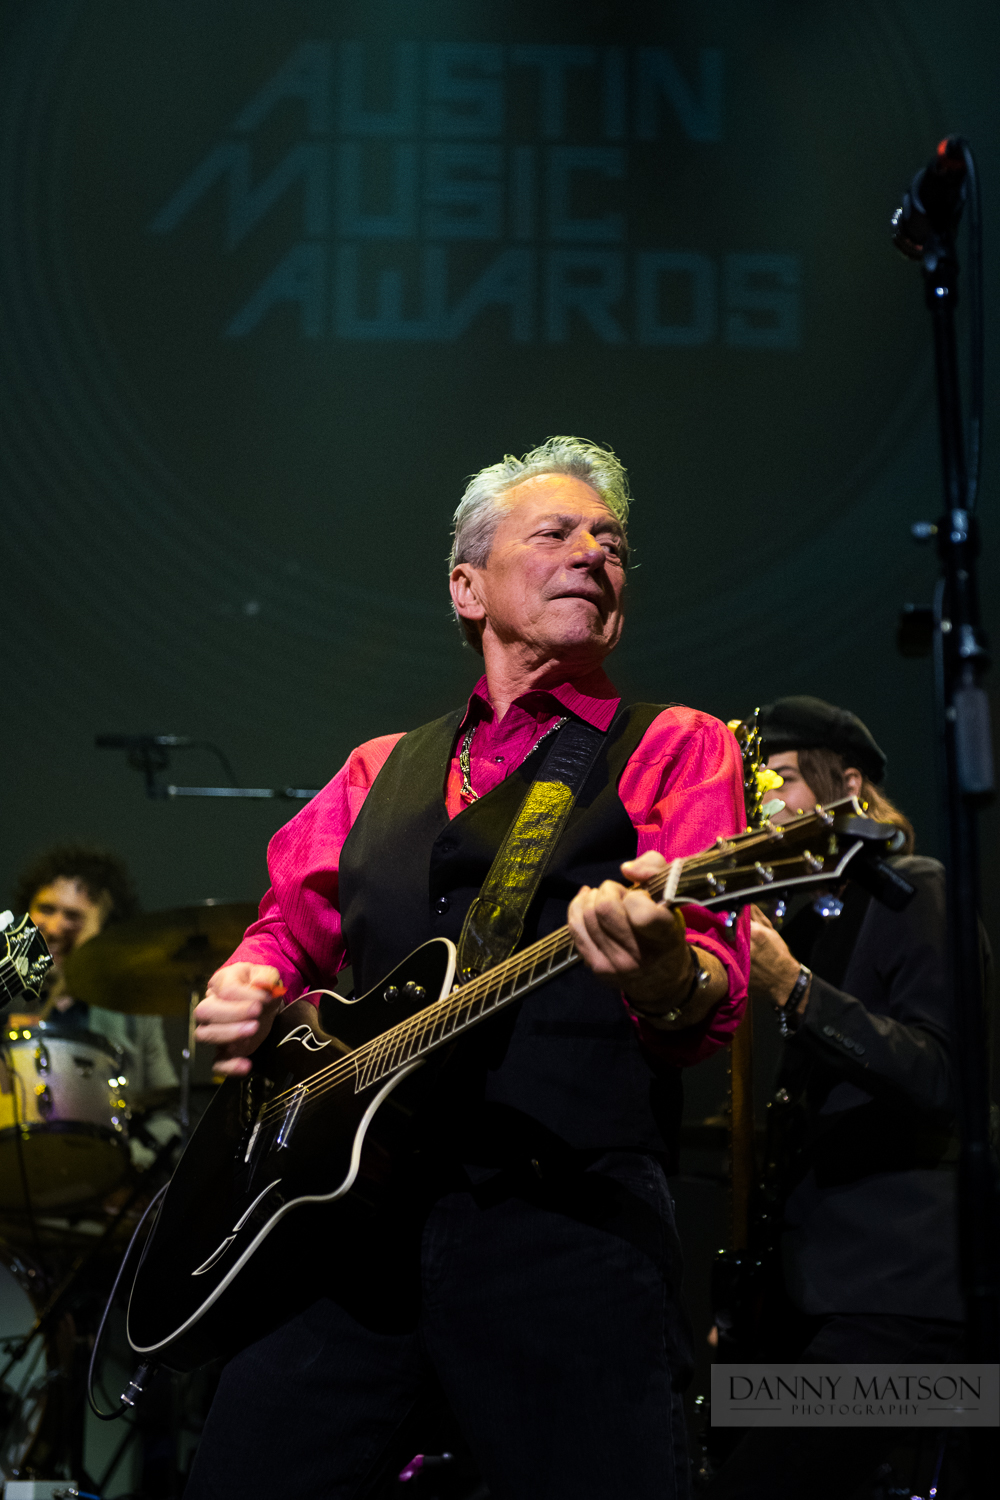 Concert Photos: 36th Austin Music Awards at ACLLive